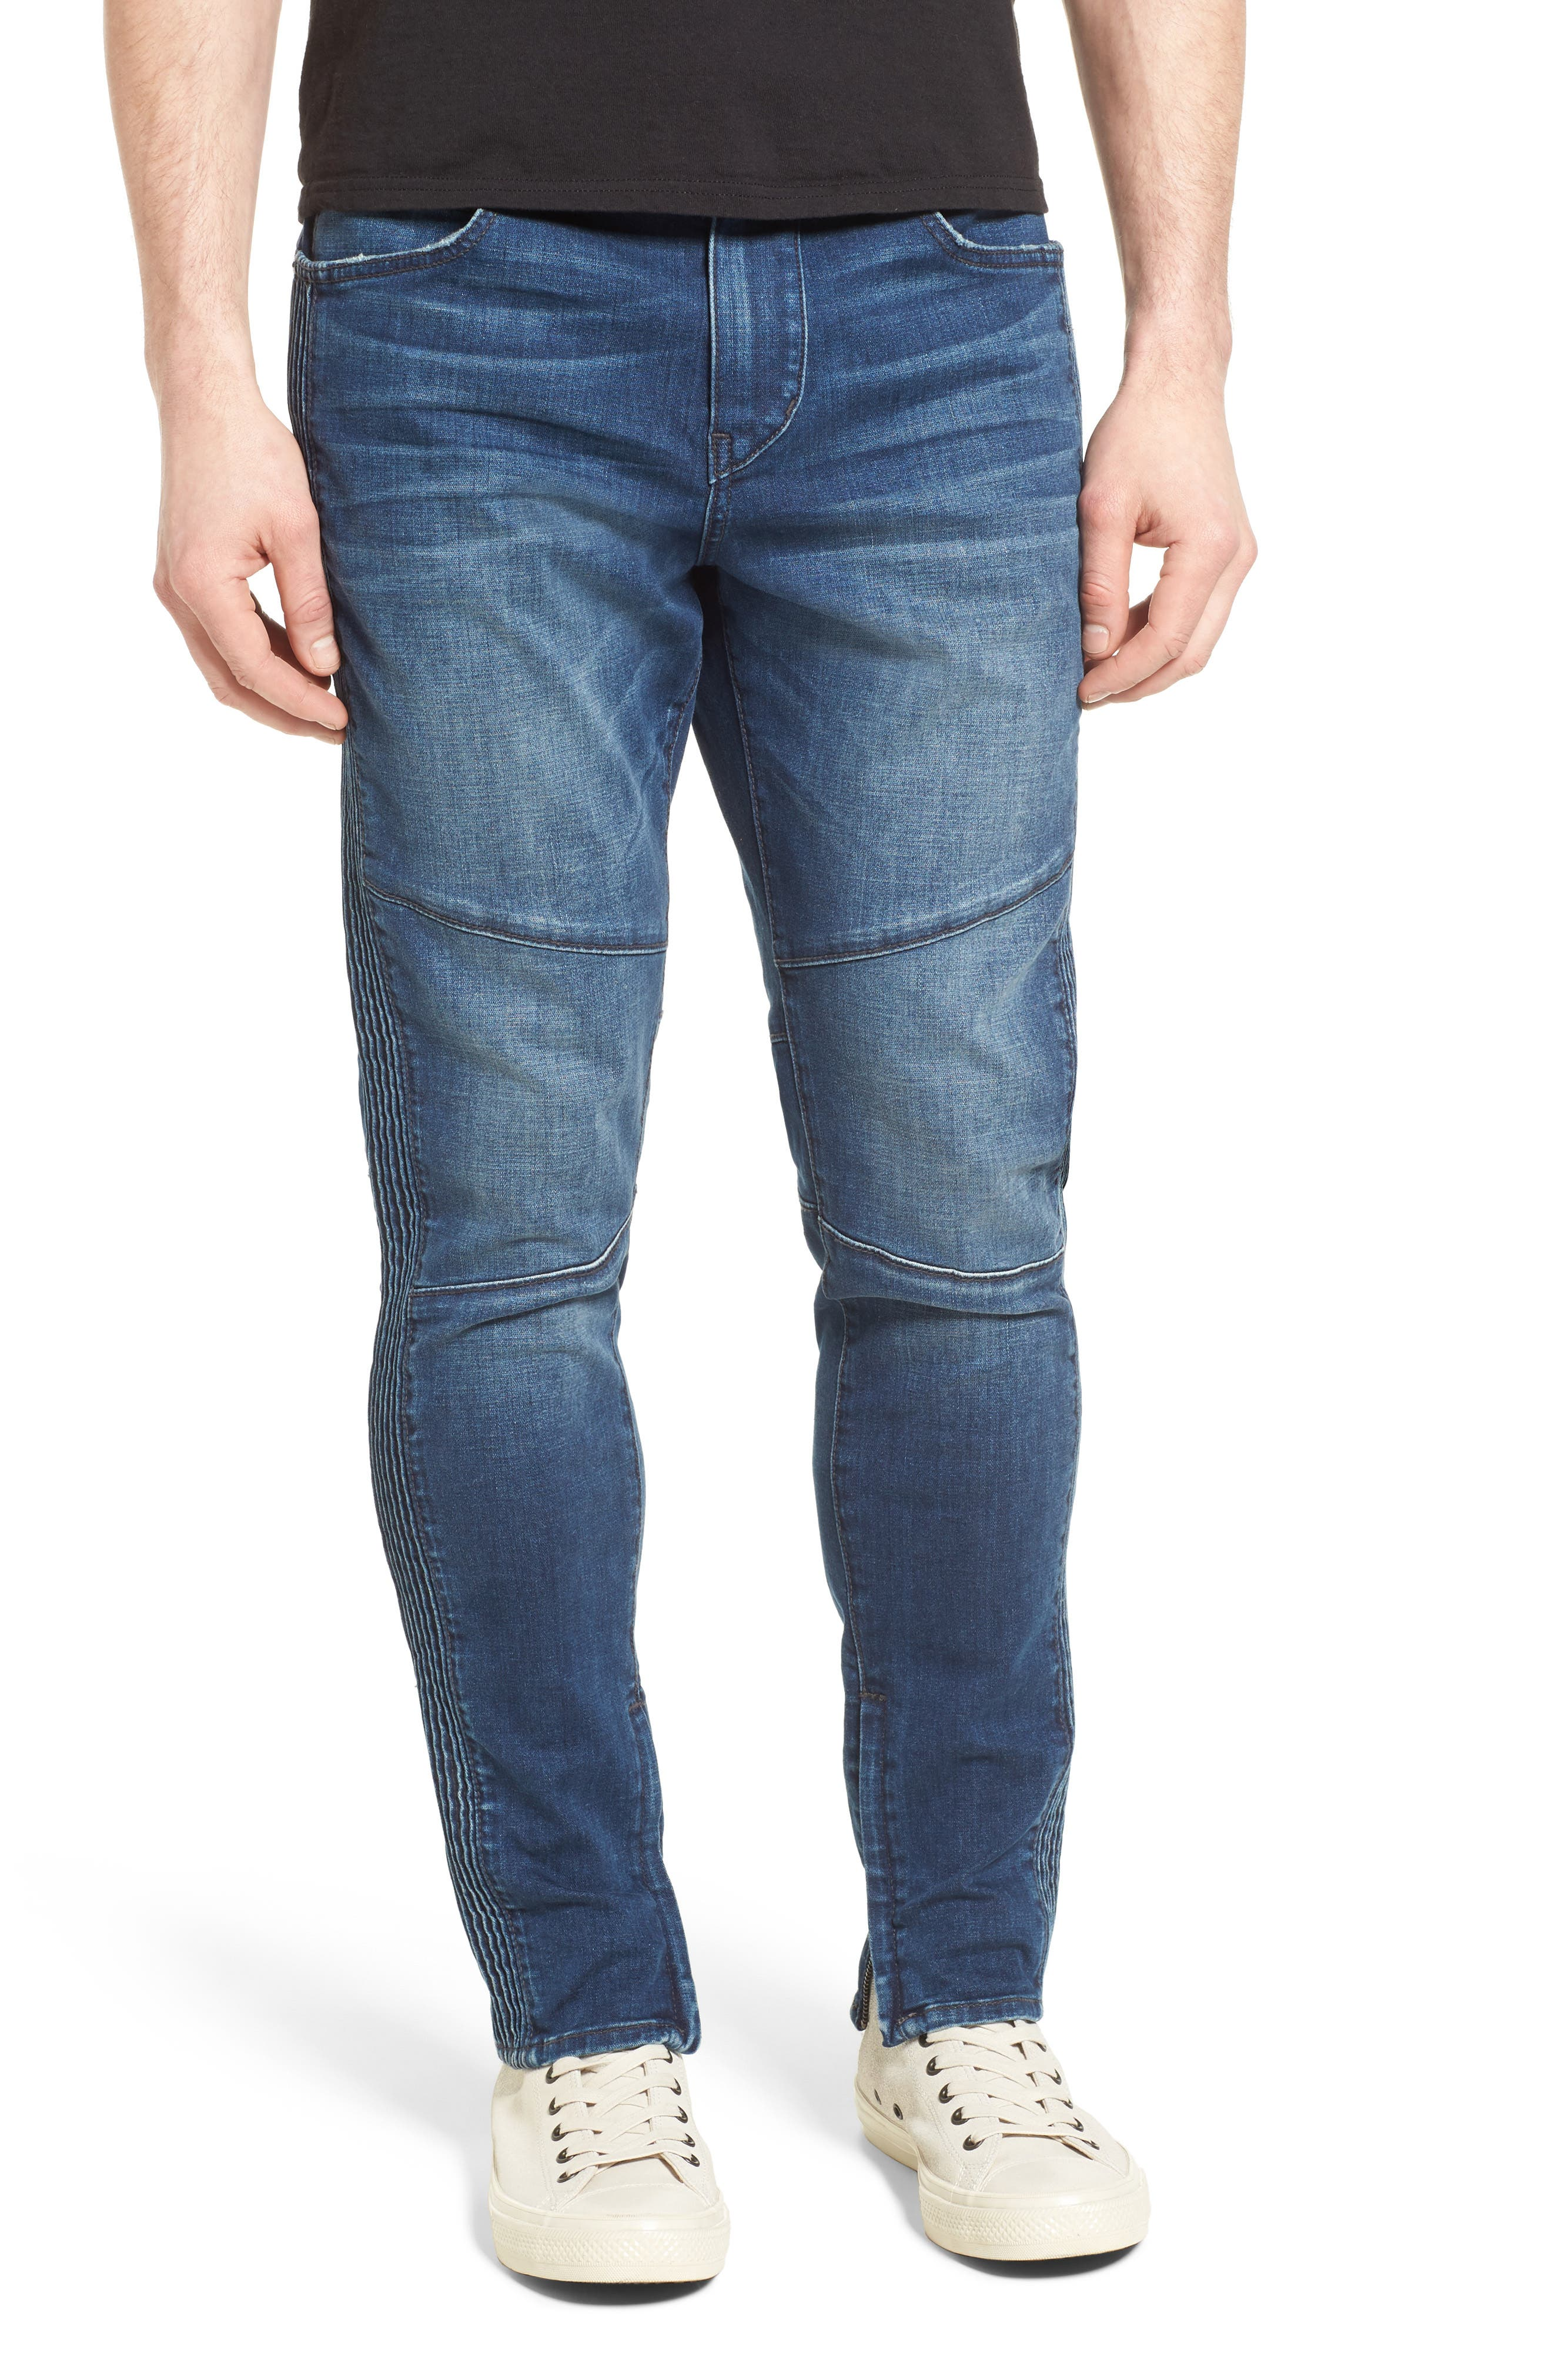 Racer Skinny Fit Jeans,                             Main thumbnail 1, color,                             WHISKEY BLUES